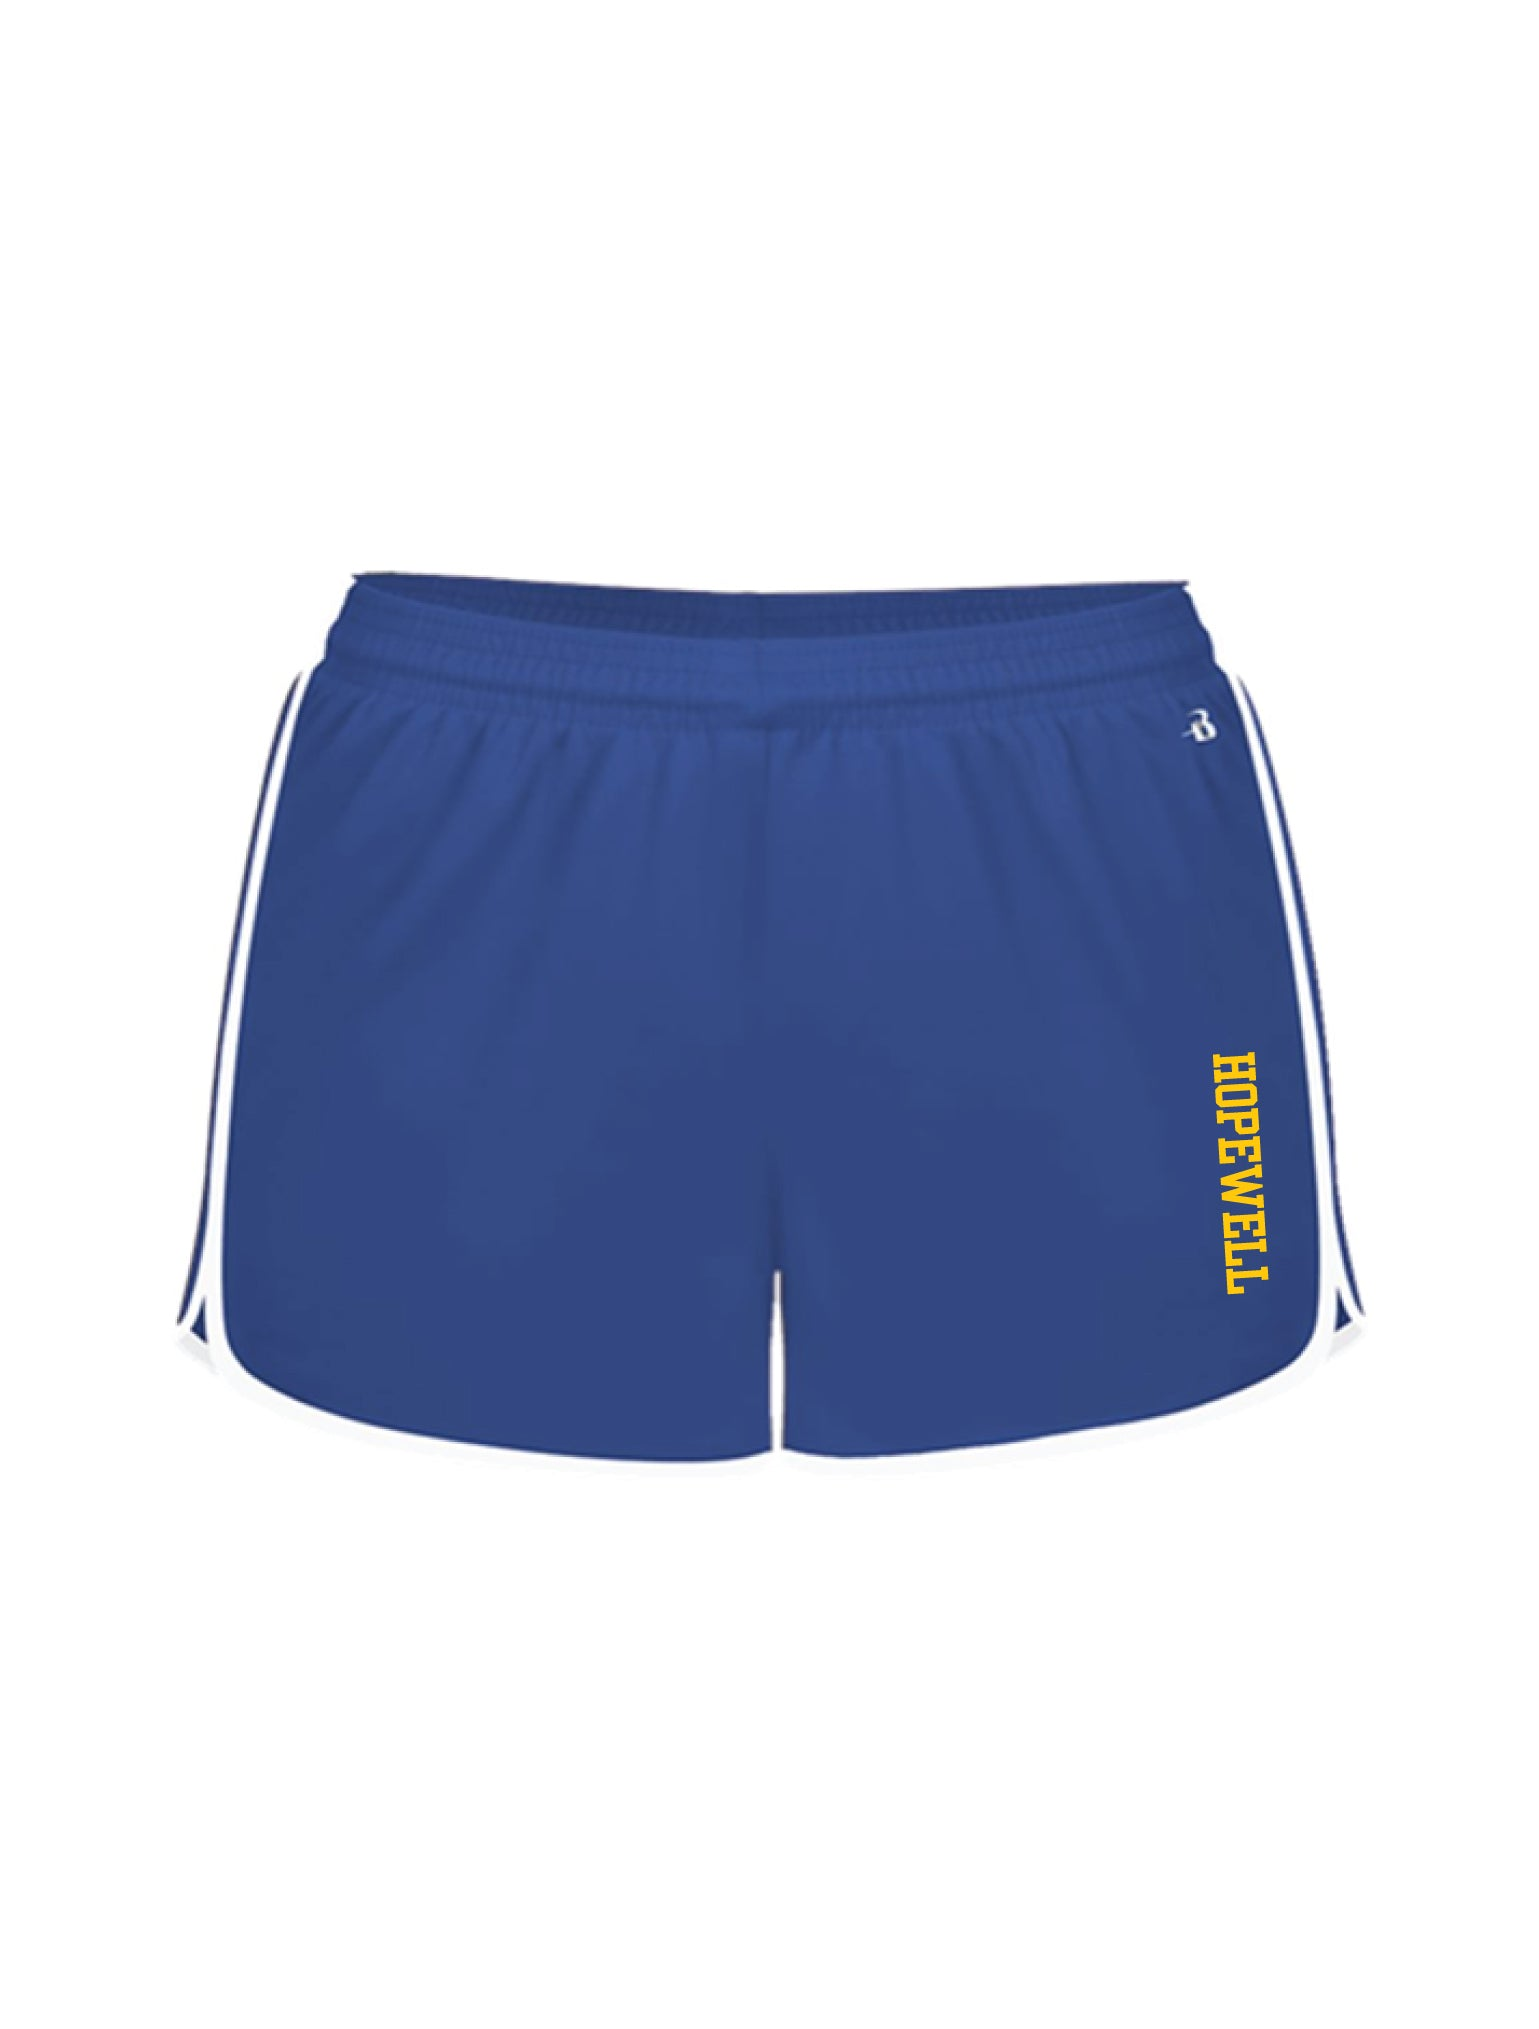 Hopewell Running Shorts- Youth